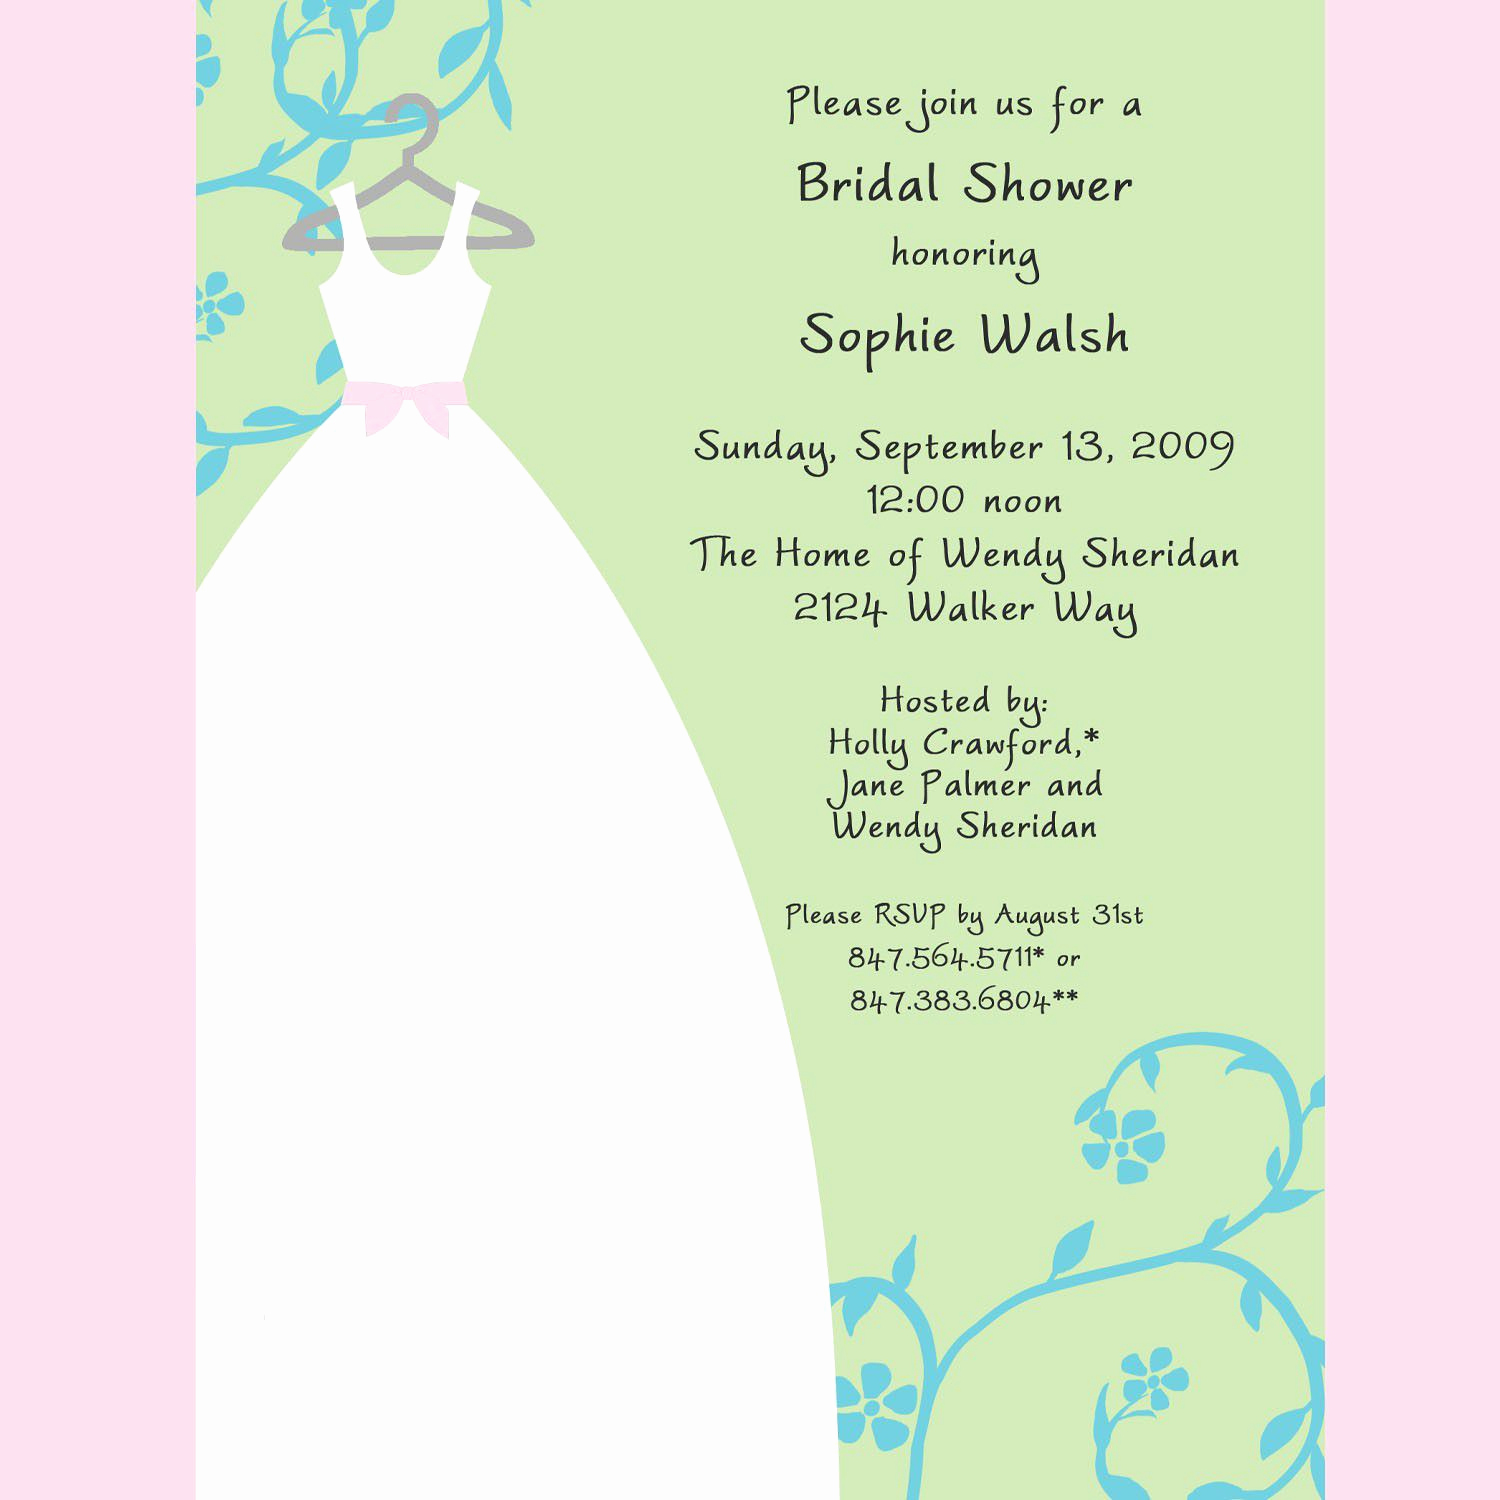 Gift Card Shower Invitation Best Of Gift Card Bridal Shower Invitation Wording Gift Card